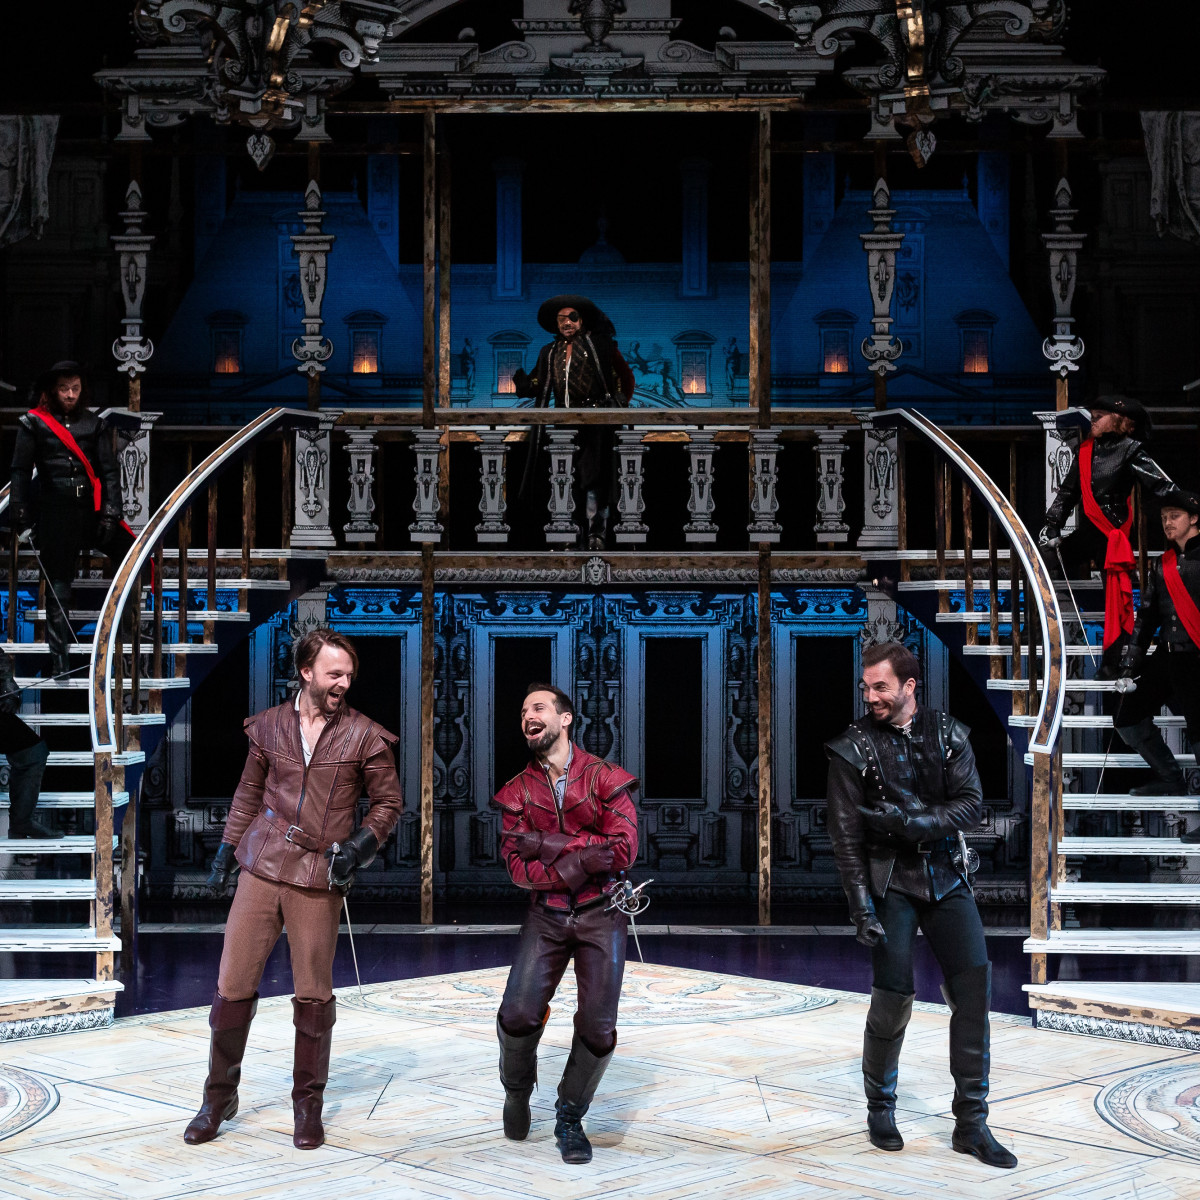 Alley Theatre: Three Musketeers cast